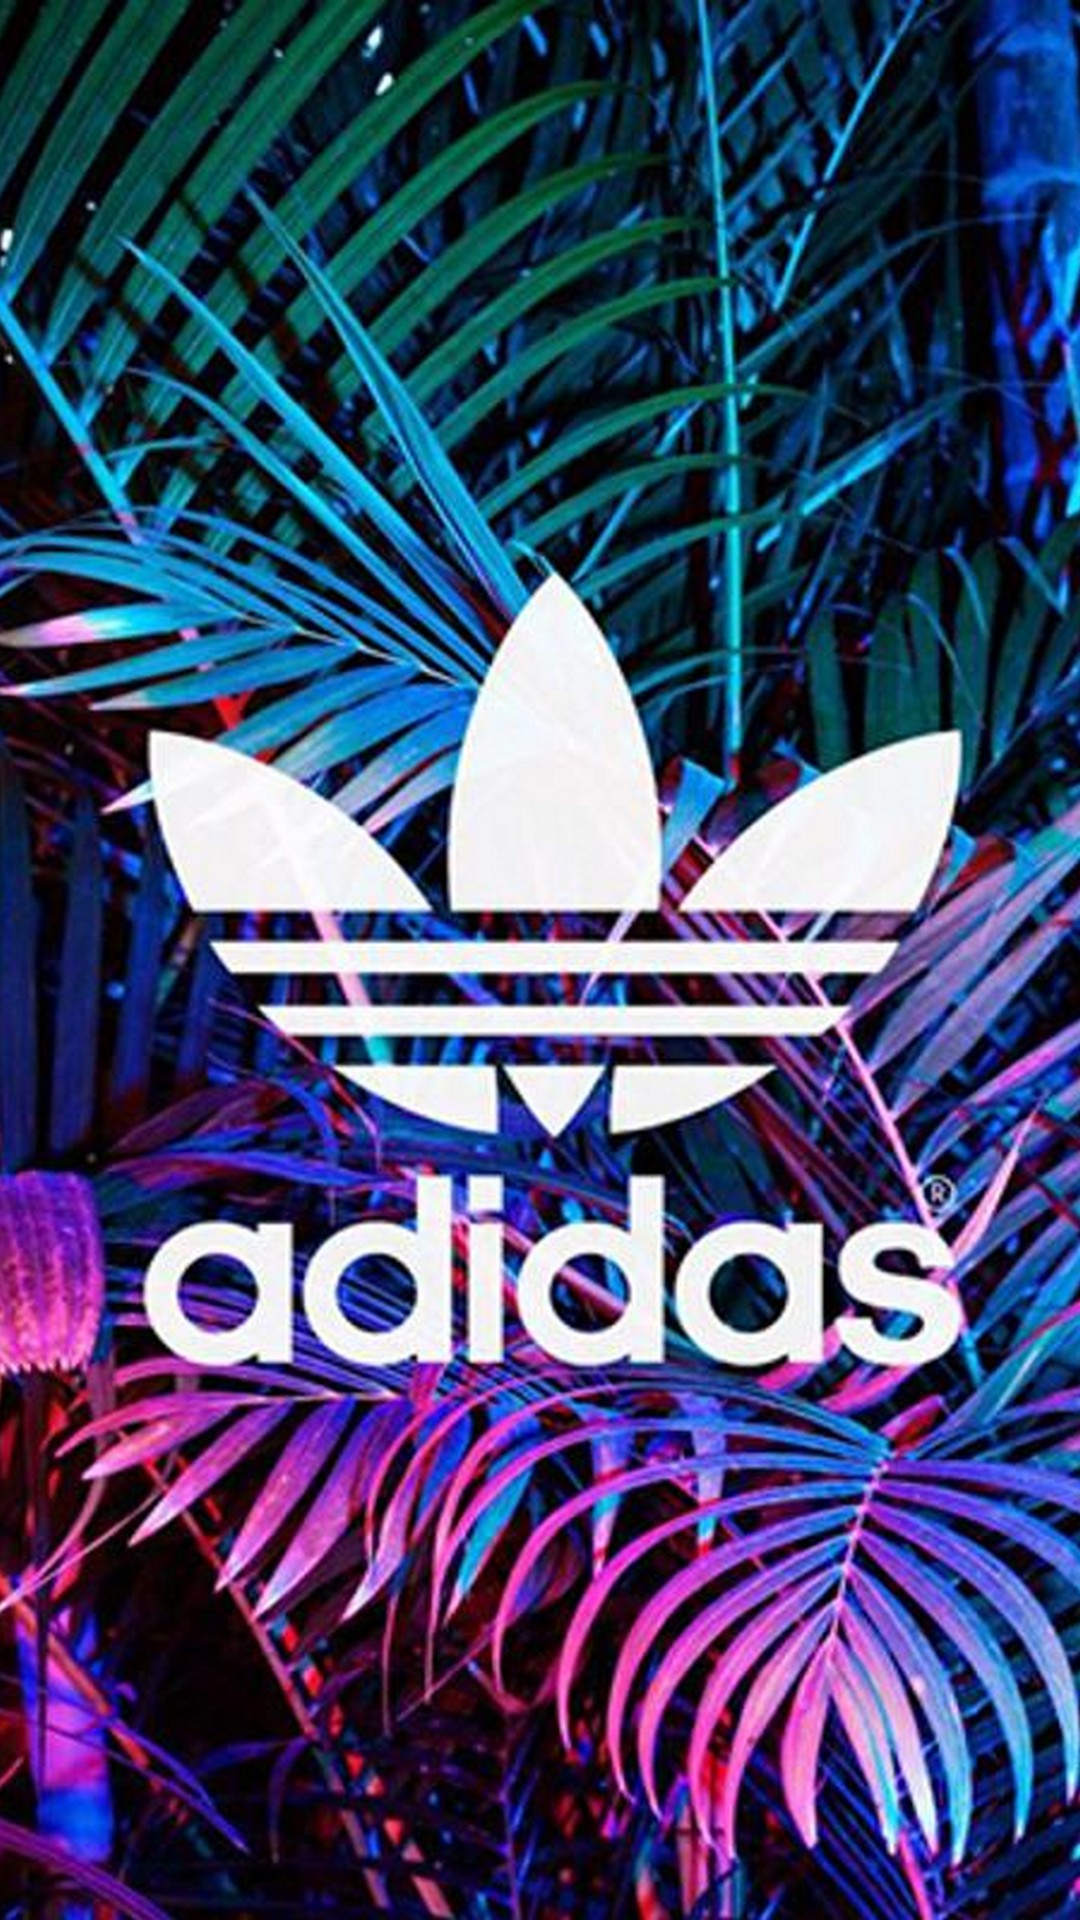 Adidas Backgrounds For Android   2021 Android Wallpapers 1080x1920